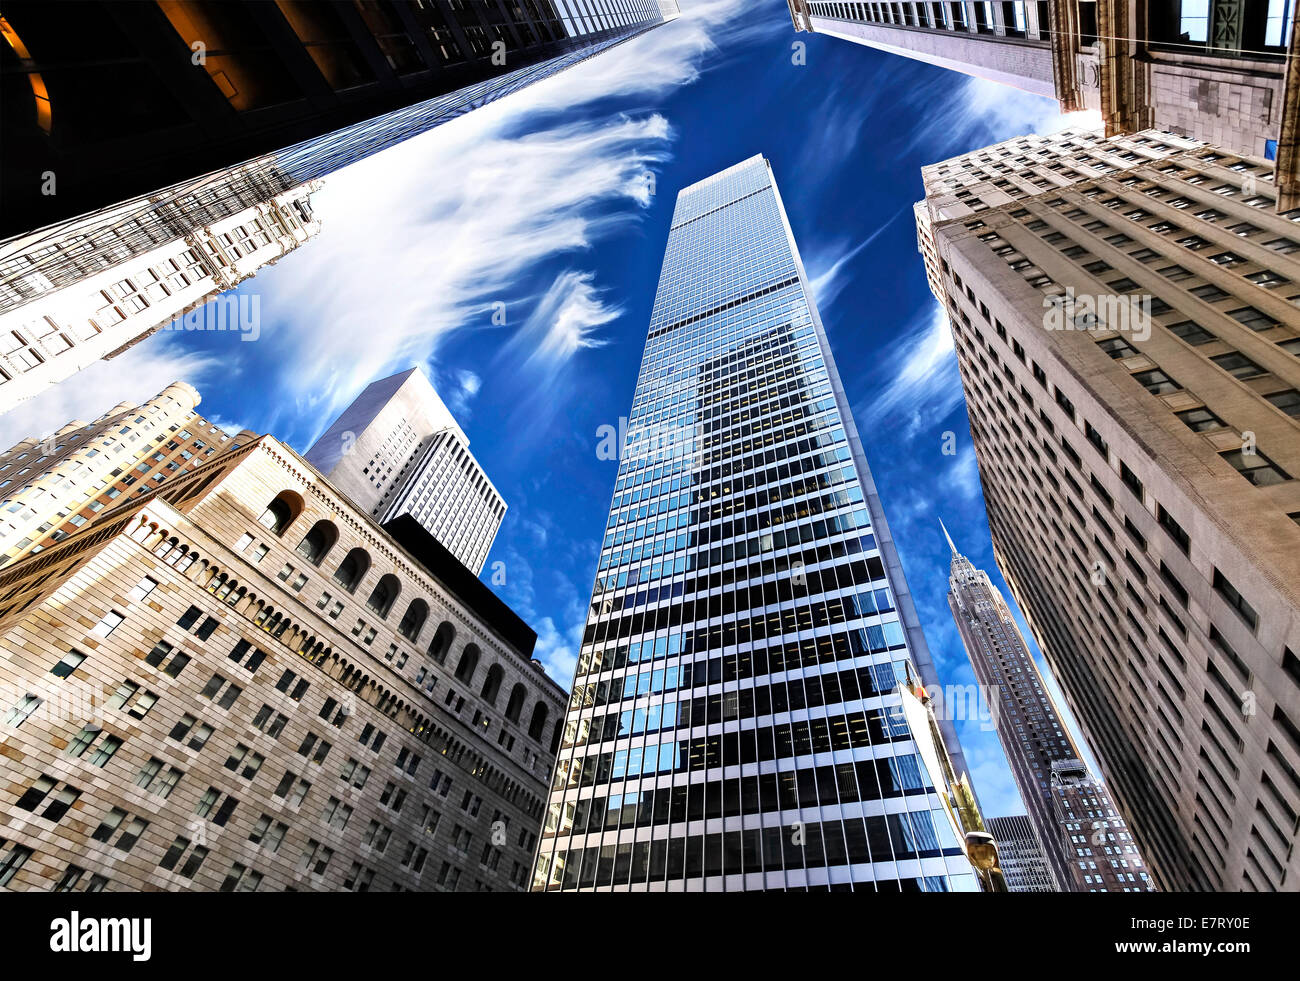 Skyscrapers in Lower Manhattan, looking up at sky, New York City. - Stock Image